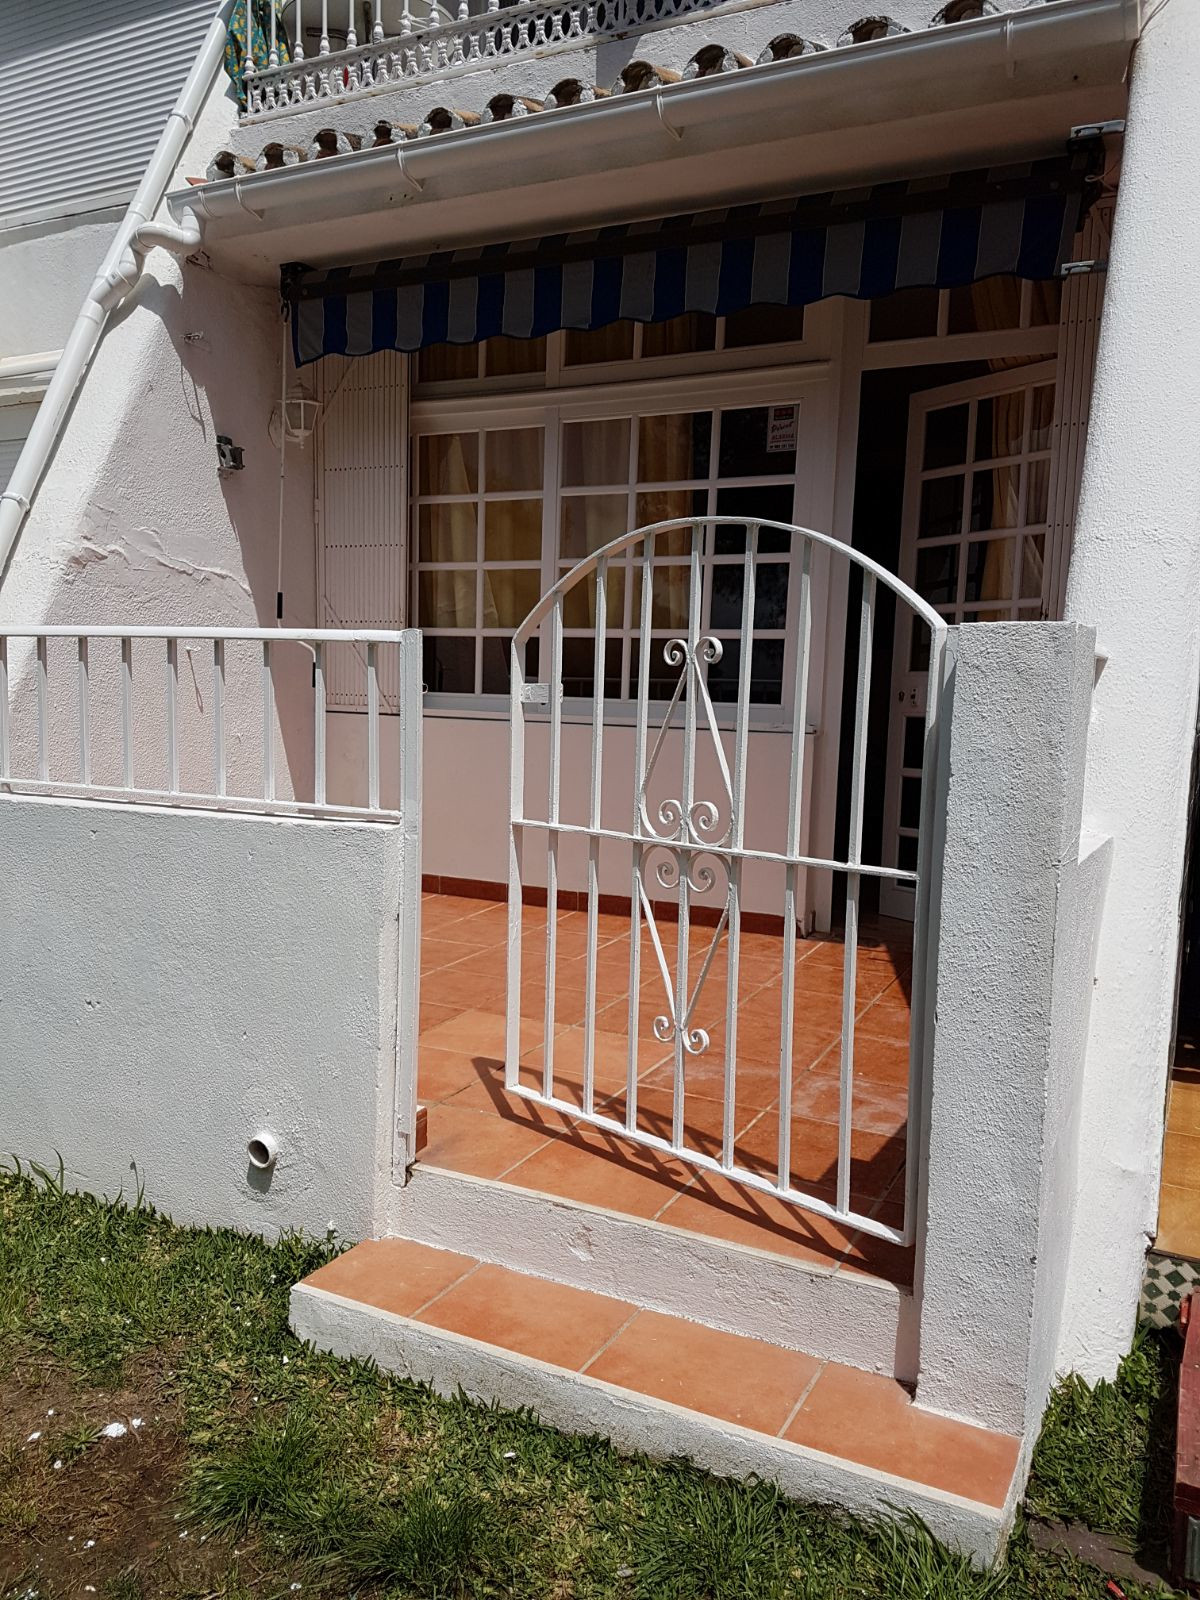 Great apartment in the Seghers area of ??Estepona with one bedroom and one bathroom, terrace of 9 m2, Spain